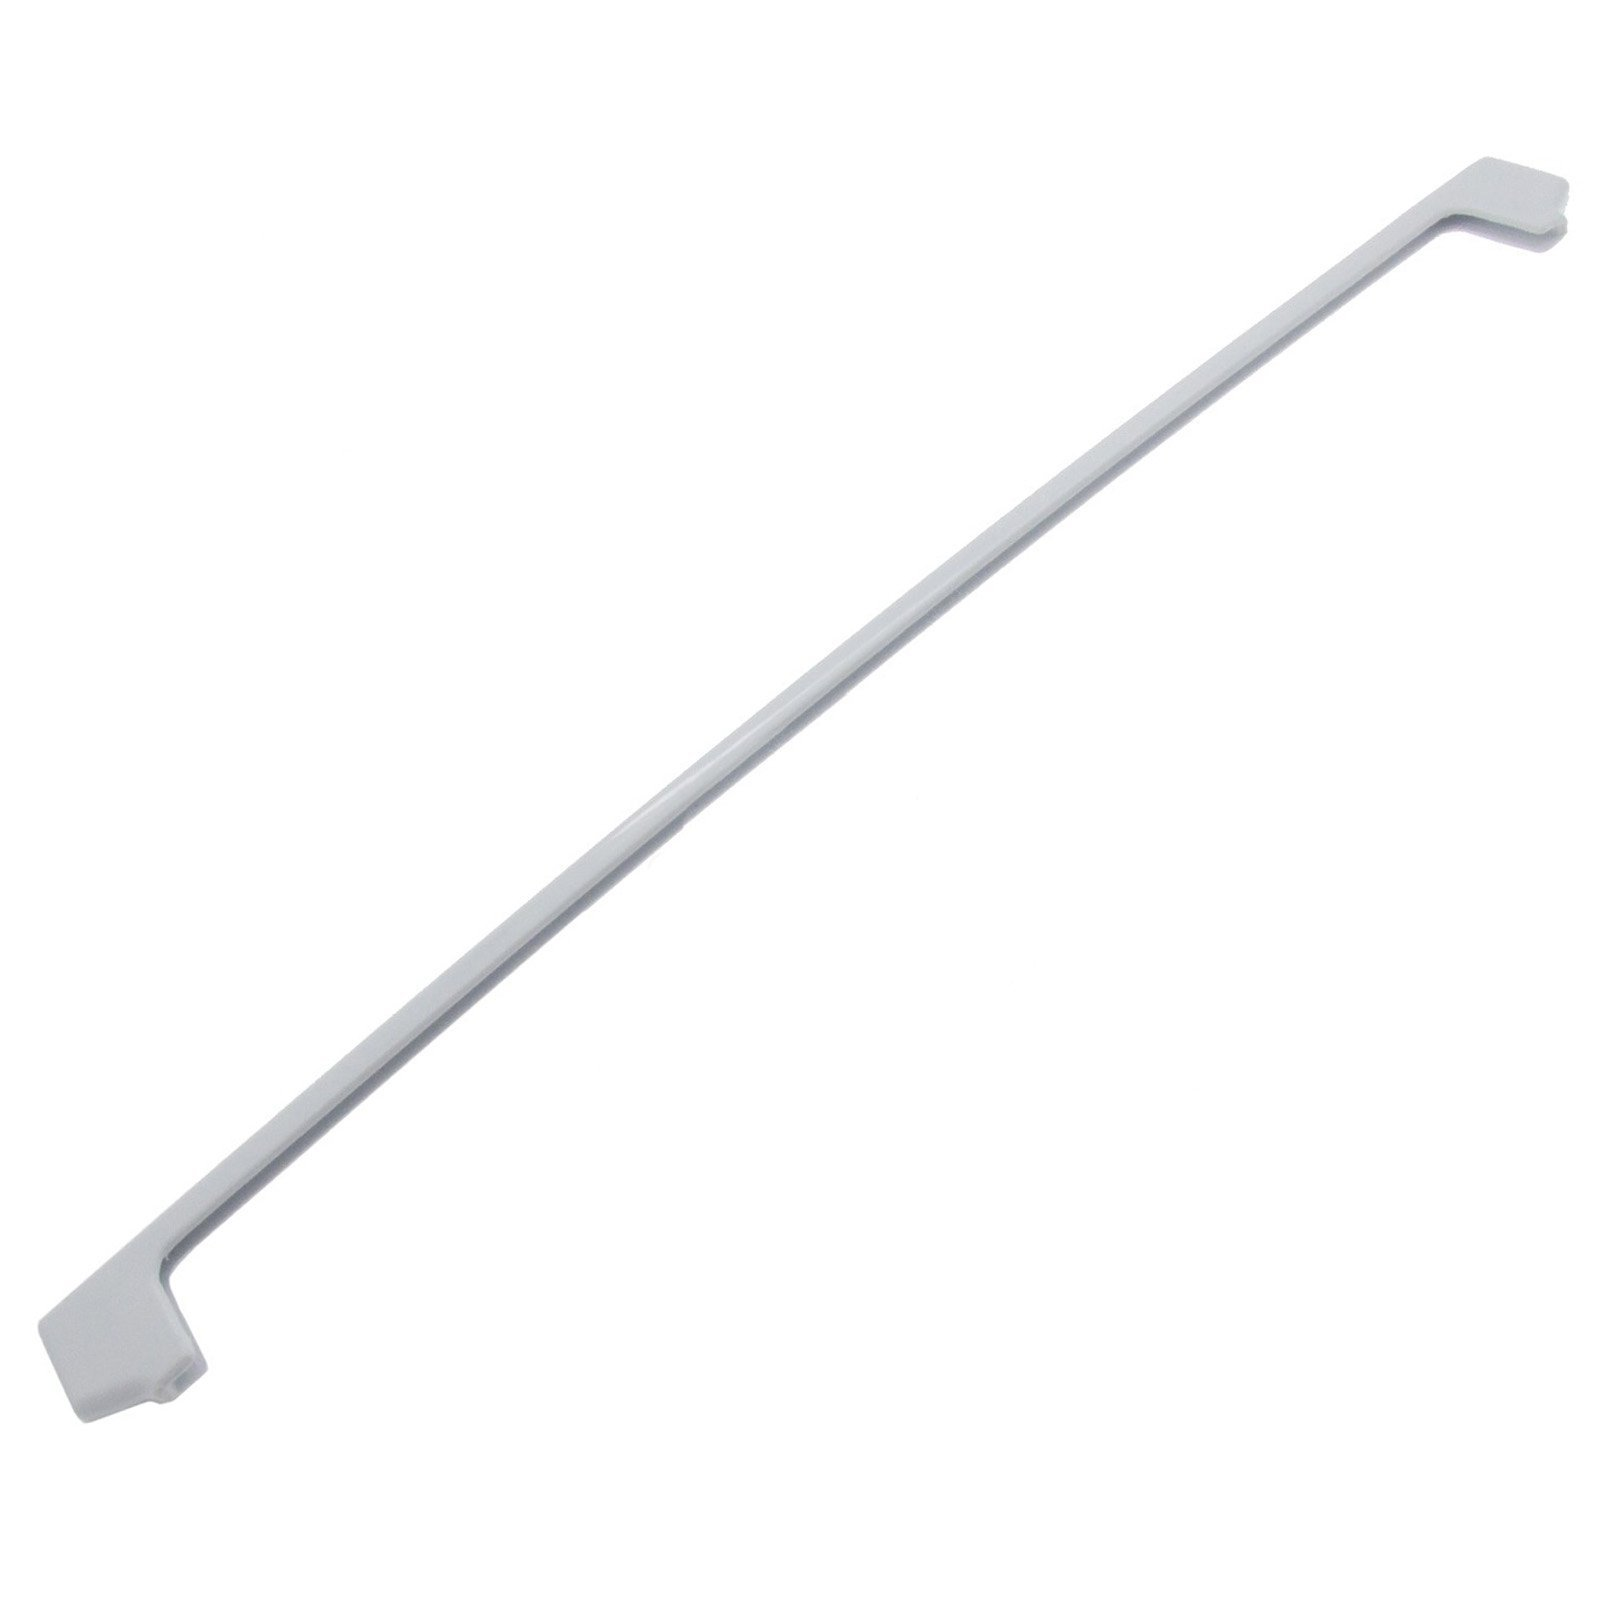 Grundig GTM10120 GTM14120 GTM14130 Fridge Freezer Shelf Tray Plastic Trim (White)